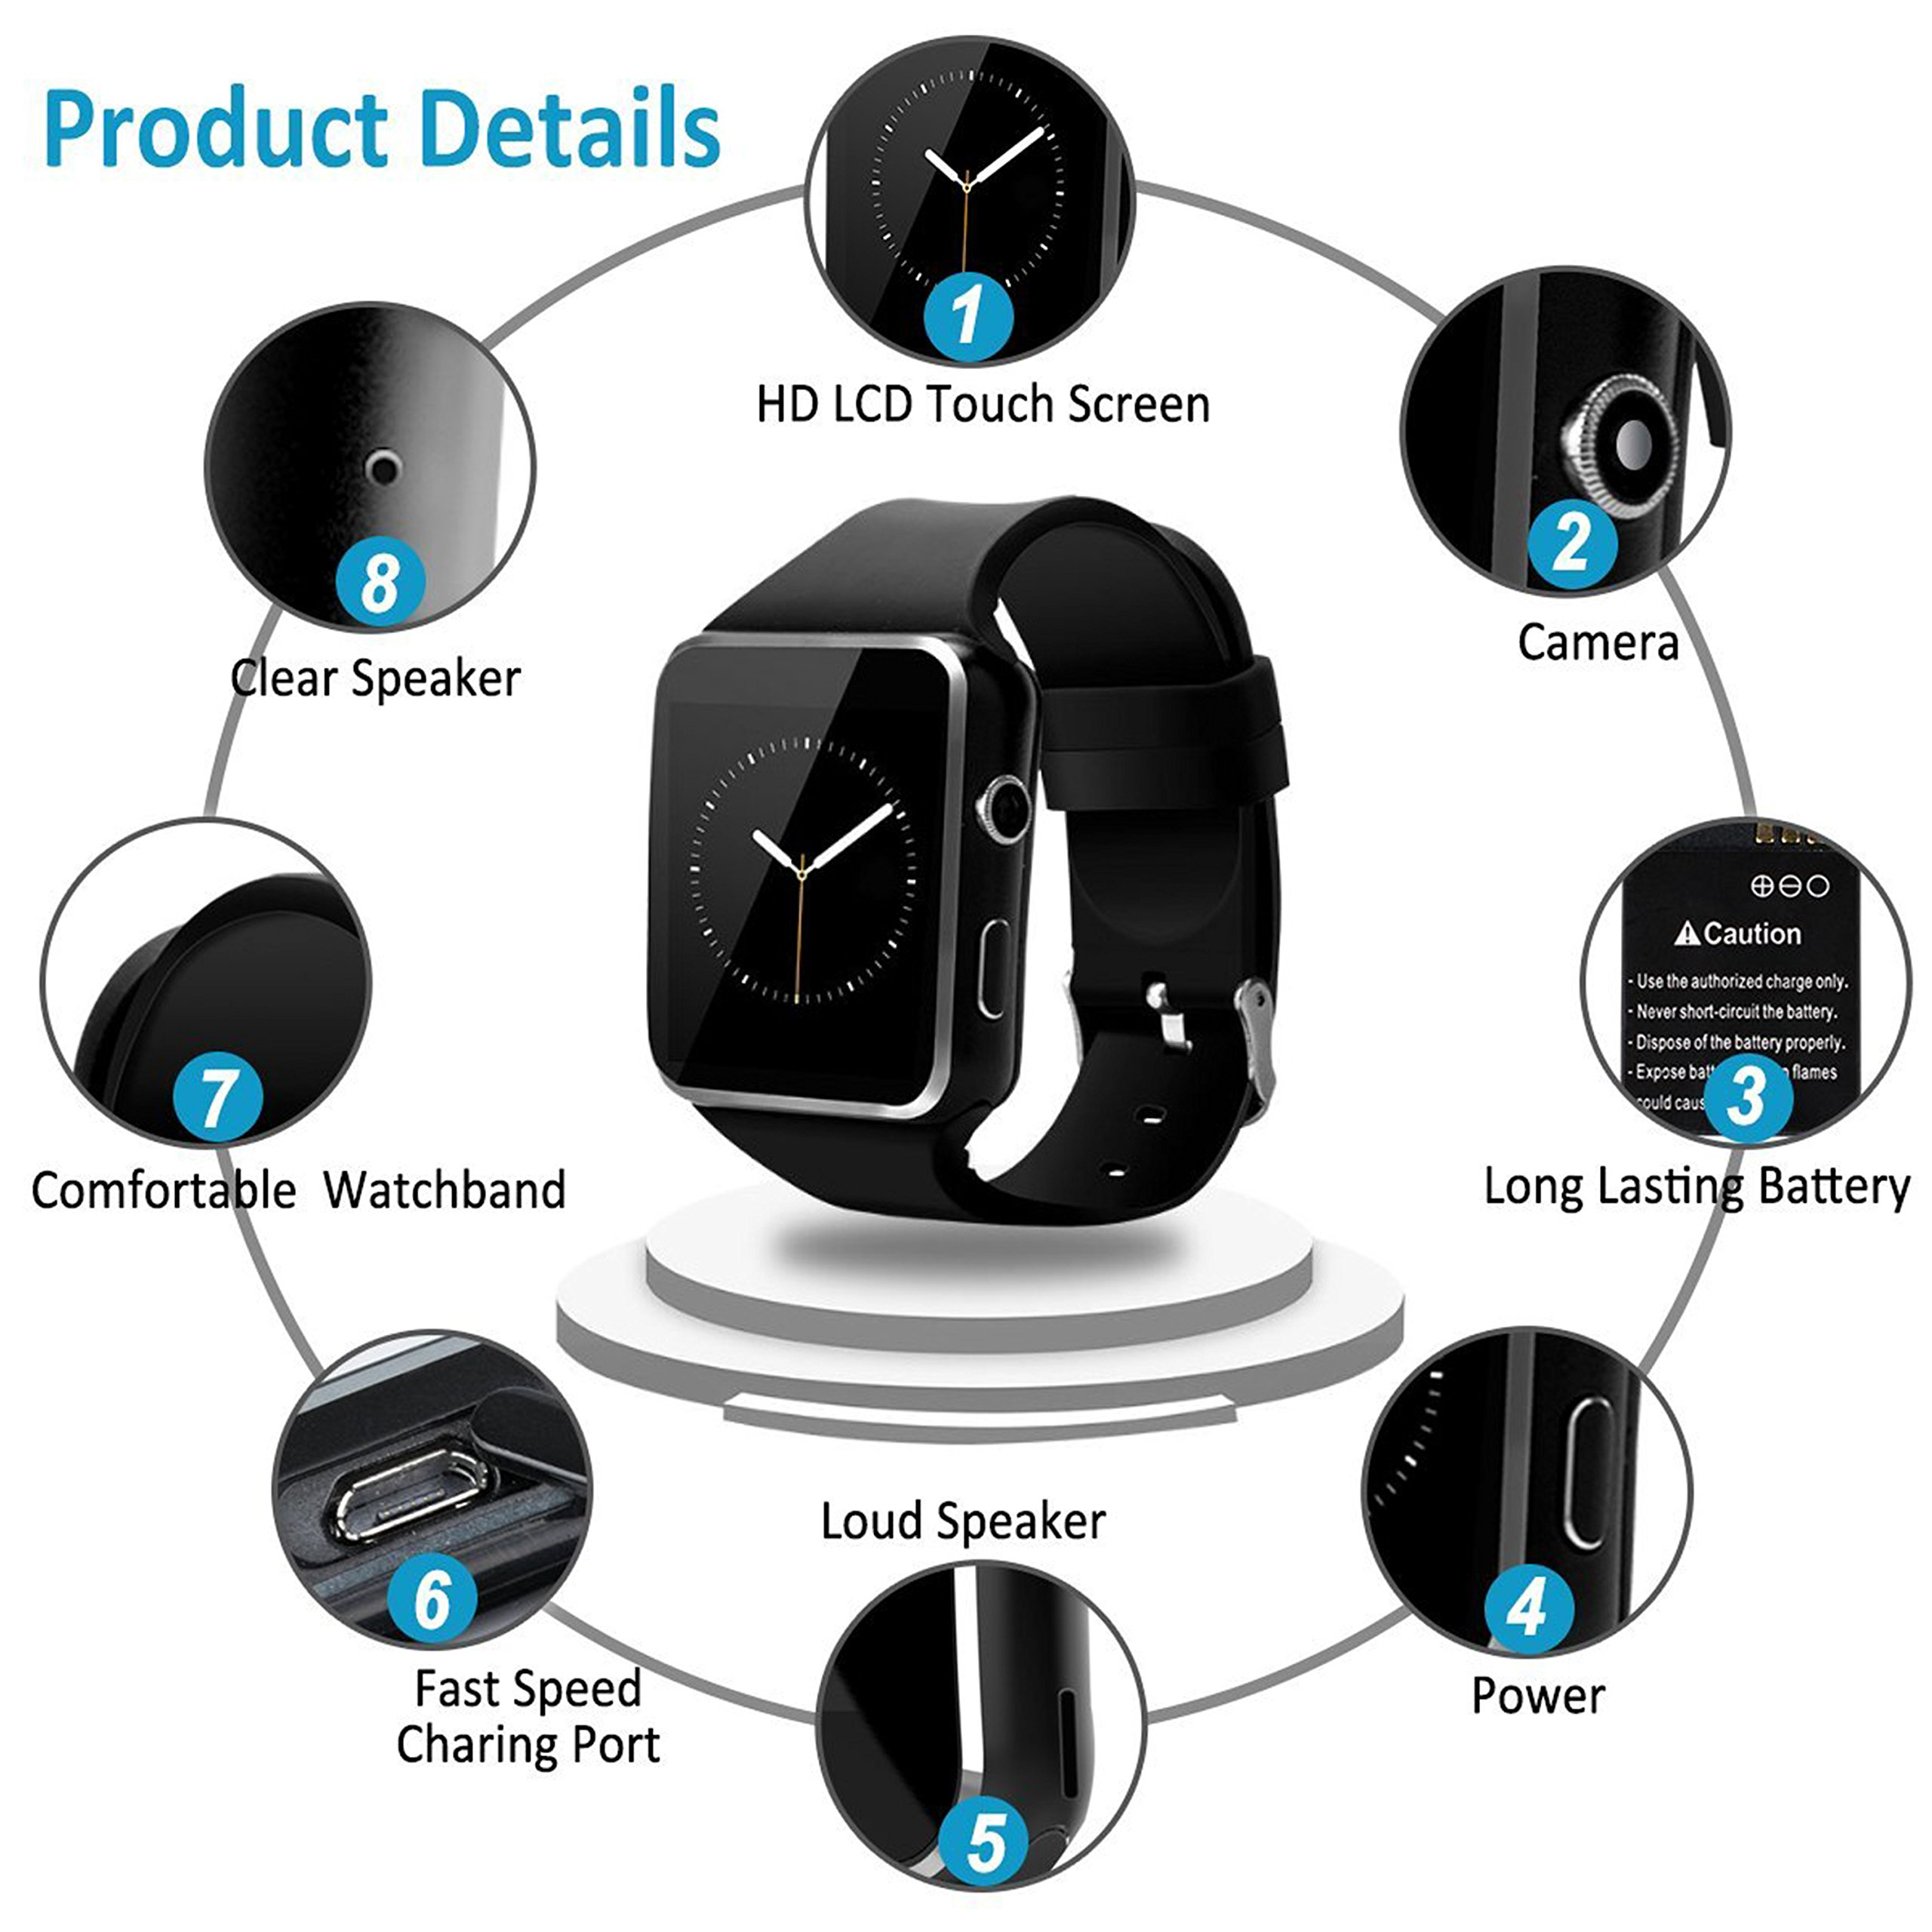 2018 Newest Bluetooth Smart Watch Touchscreen with Camera,Unlocked Watch Phone with Sim Card Slot,Smart Wrist Watch,Smartwatch Phone for Android Samsung S9 S8 IOS Iphone 8 7S Men Women Kids (BLACK) by JAVENSMARTEQT (Image #2)